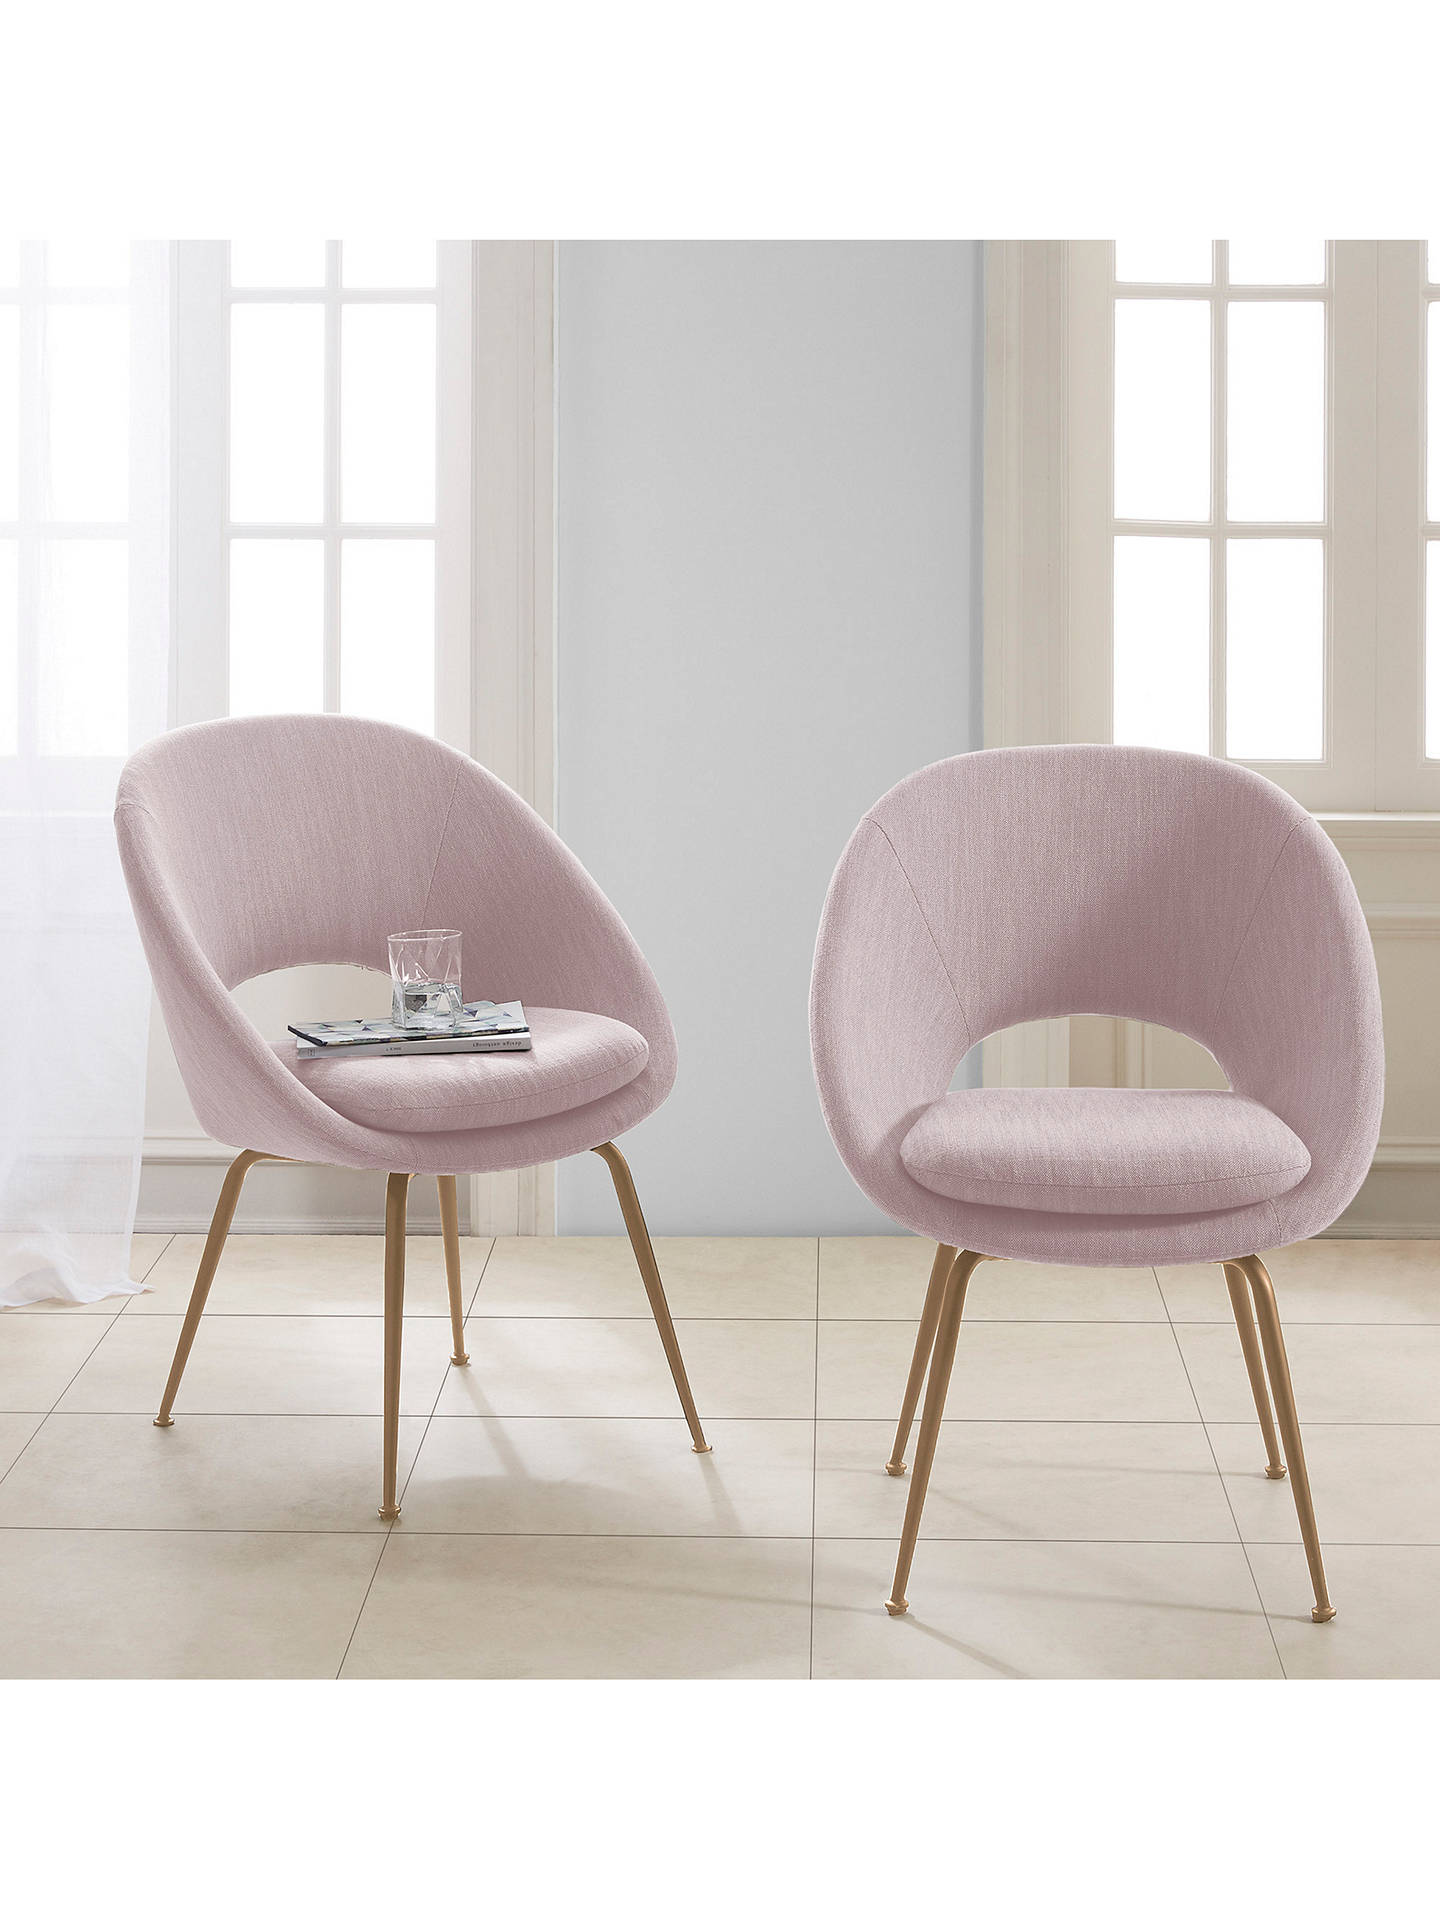 Marvelous West Elm Orb Dining Chair Dusty Blush Gmtry Best Dining Table And Chair Ideas Images Gmtryco